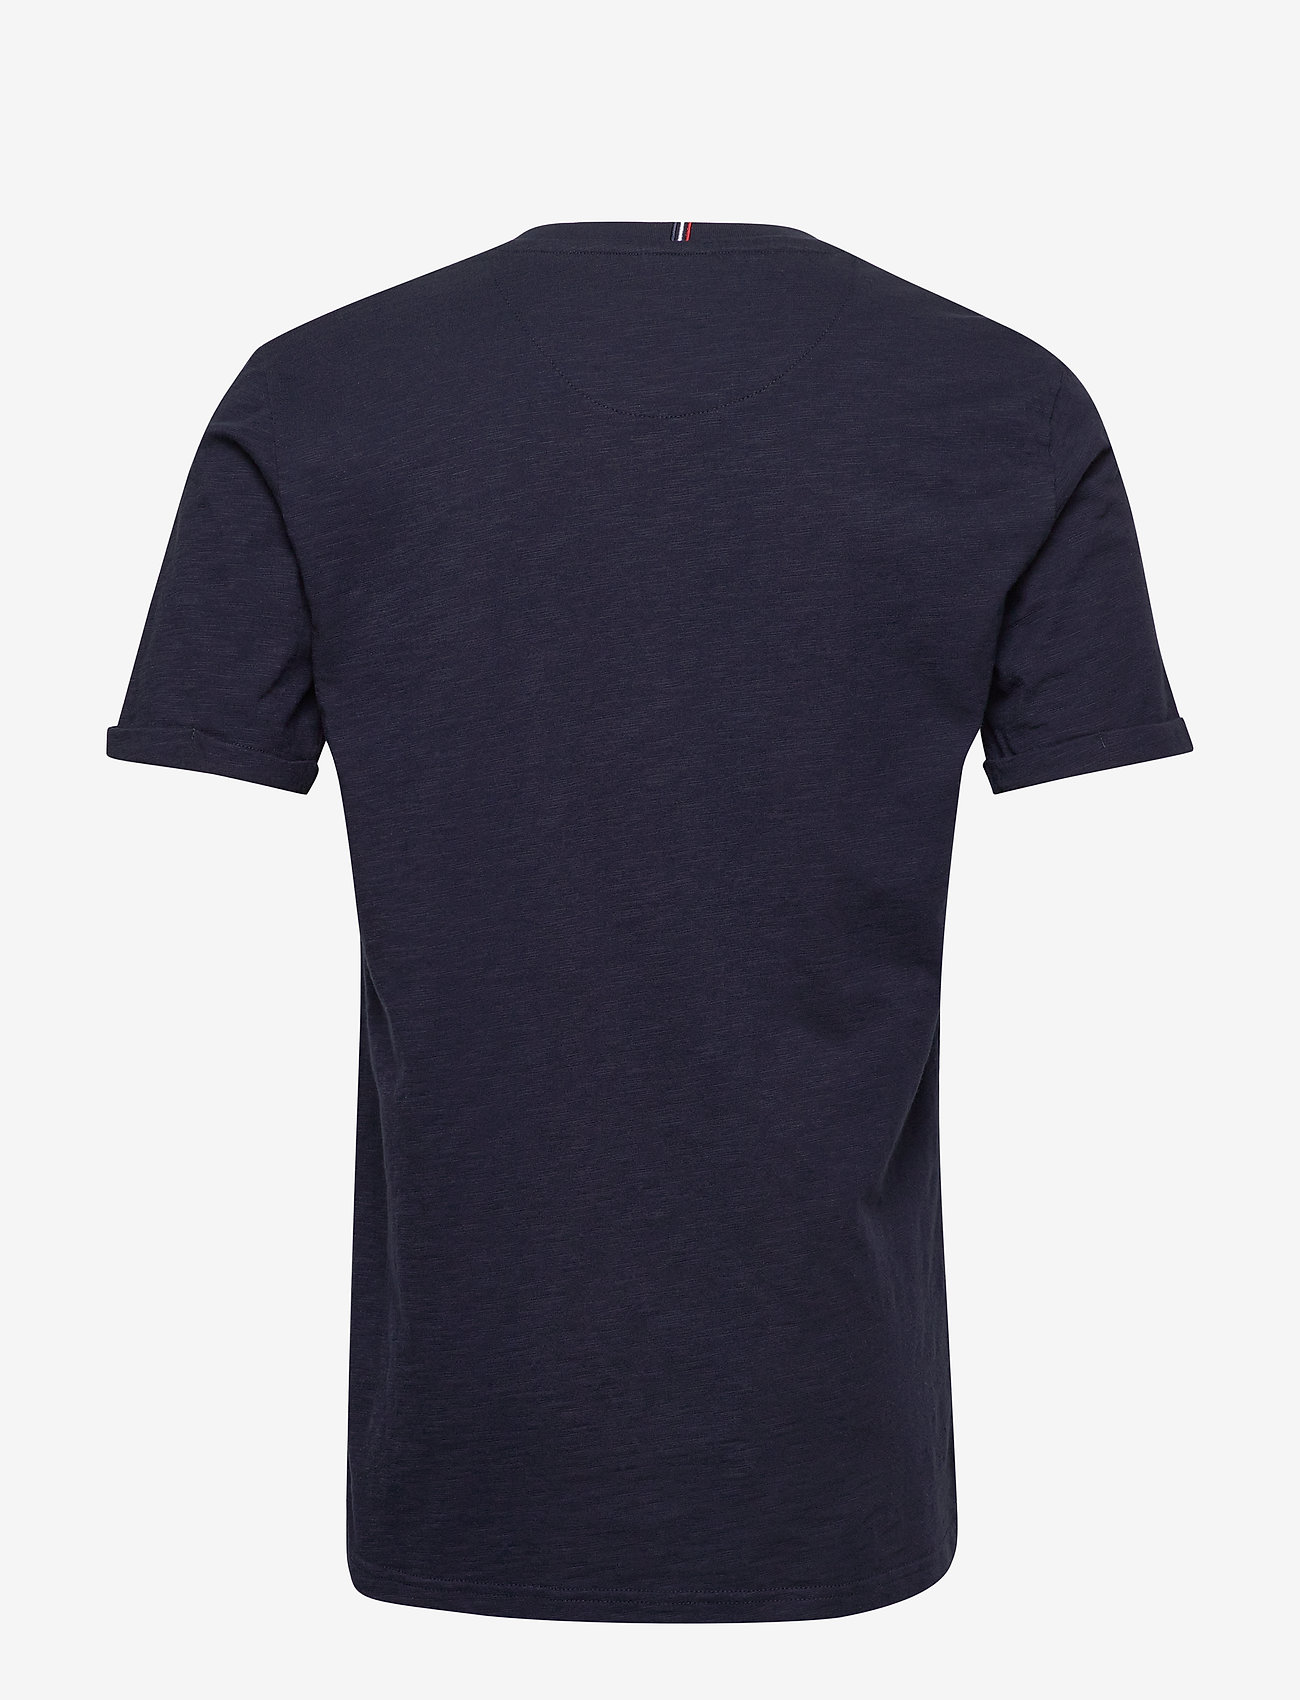 Les Deux - Antibes T-shirt - printed t-shirts - dark navy/off white